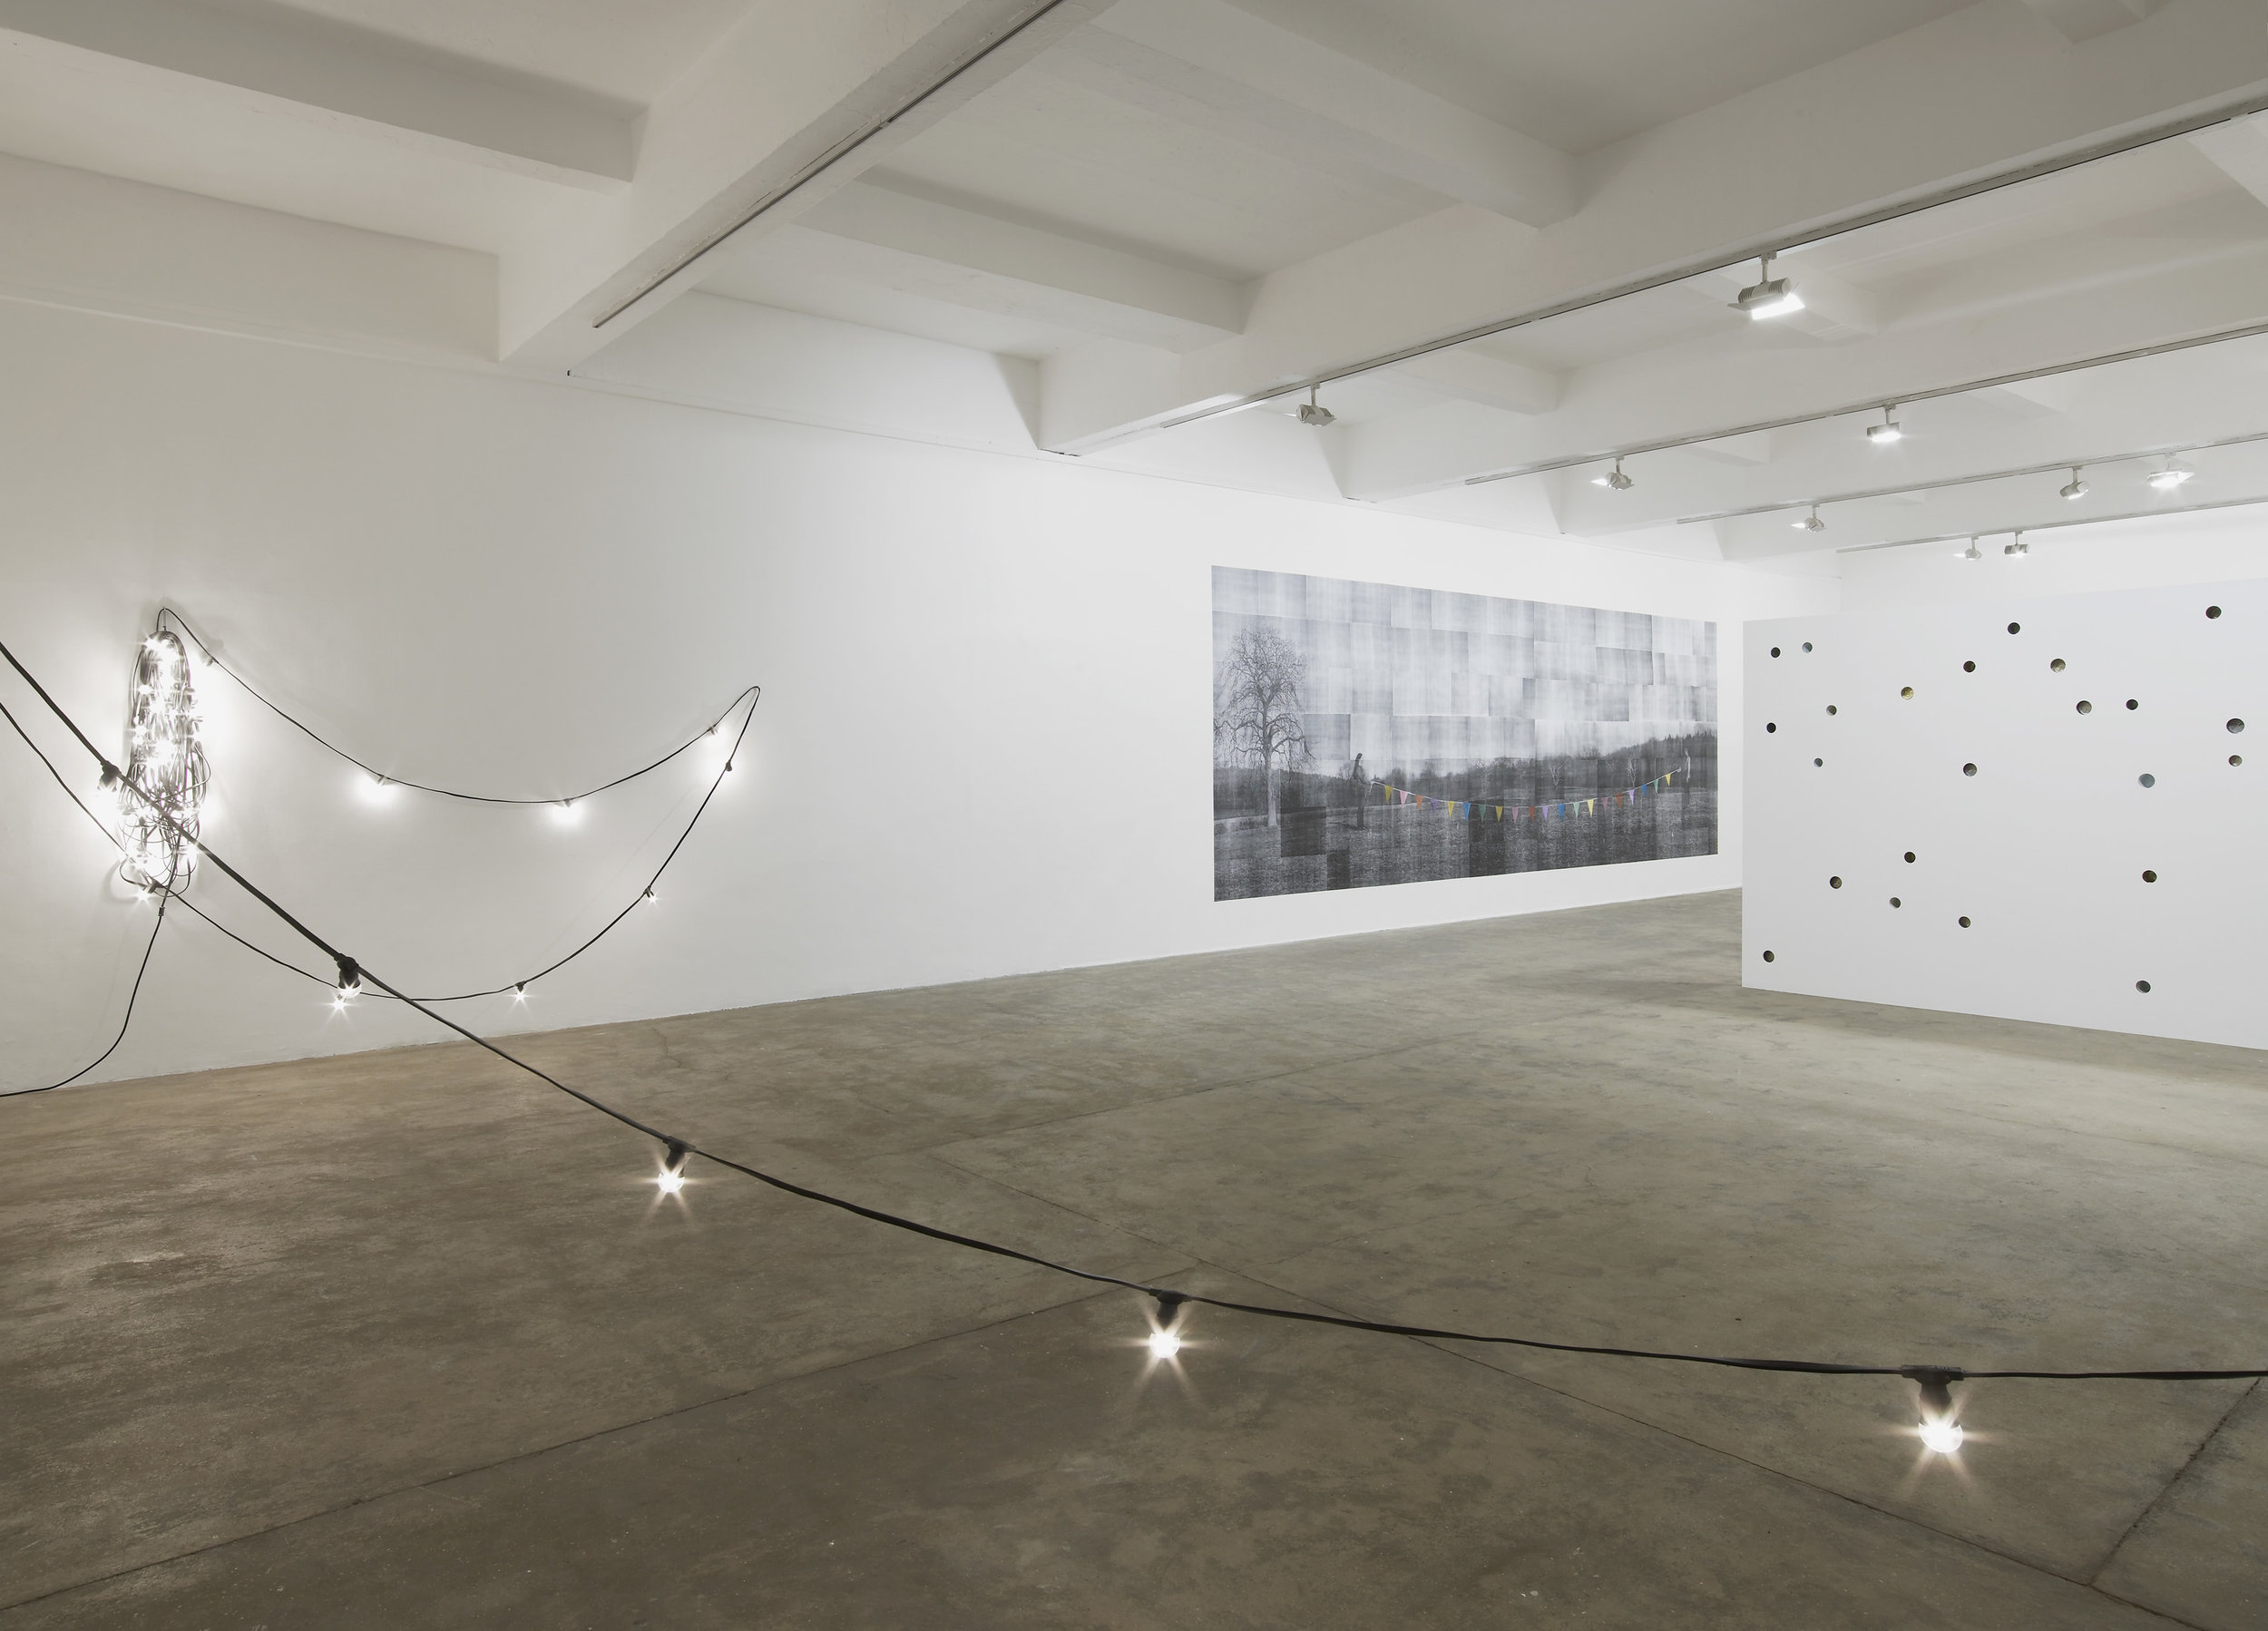 Installation View  Chisenhale Gallery, London, UK  2012